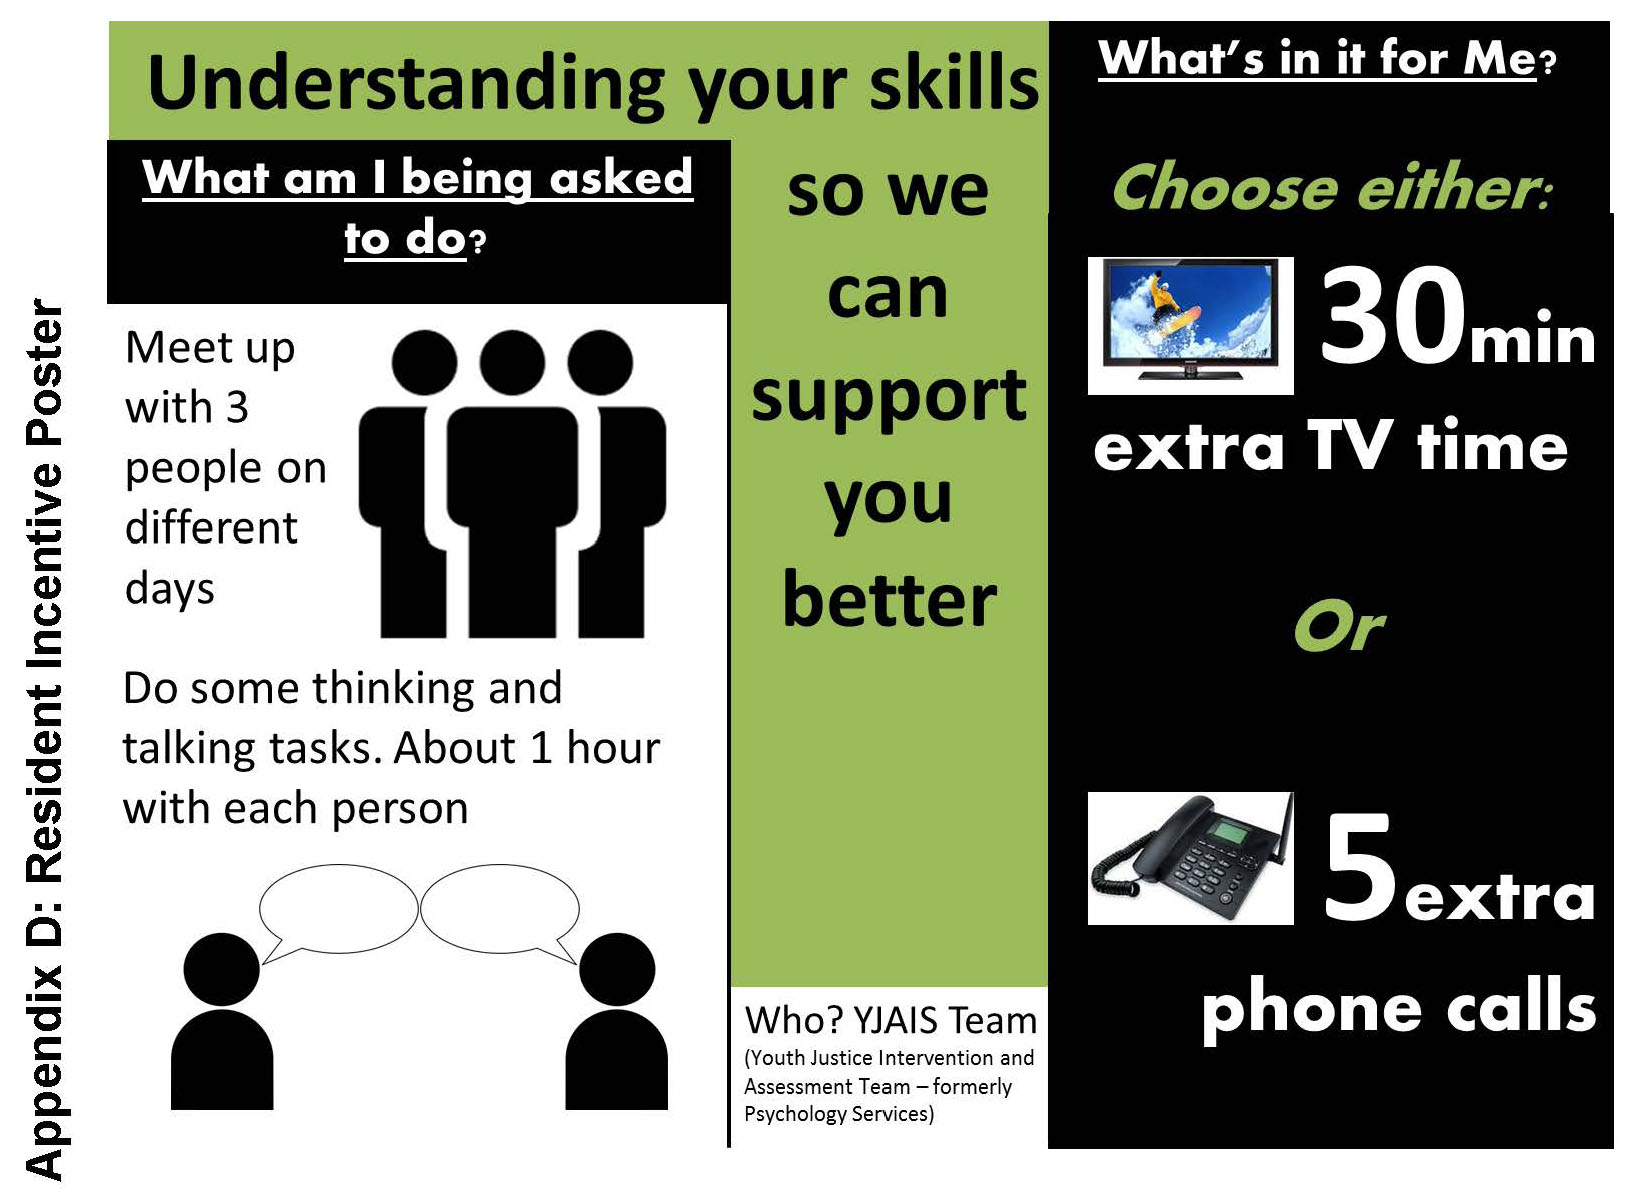 Resident incentive poster. Poster contents: Understanding your skills so we can support you better. What am I being asked to do? Meet up with three people on different days. Do some thinking and talking tasks. About one hour with each person. What's in it for me? Choose either 30 minutes extra TV time or five extra phone calls. Who? Youth justice intervention and assessment team (formerly psychology services).